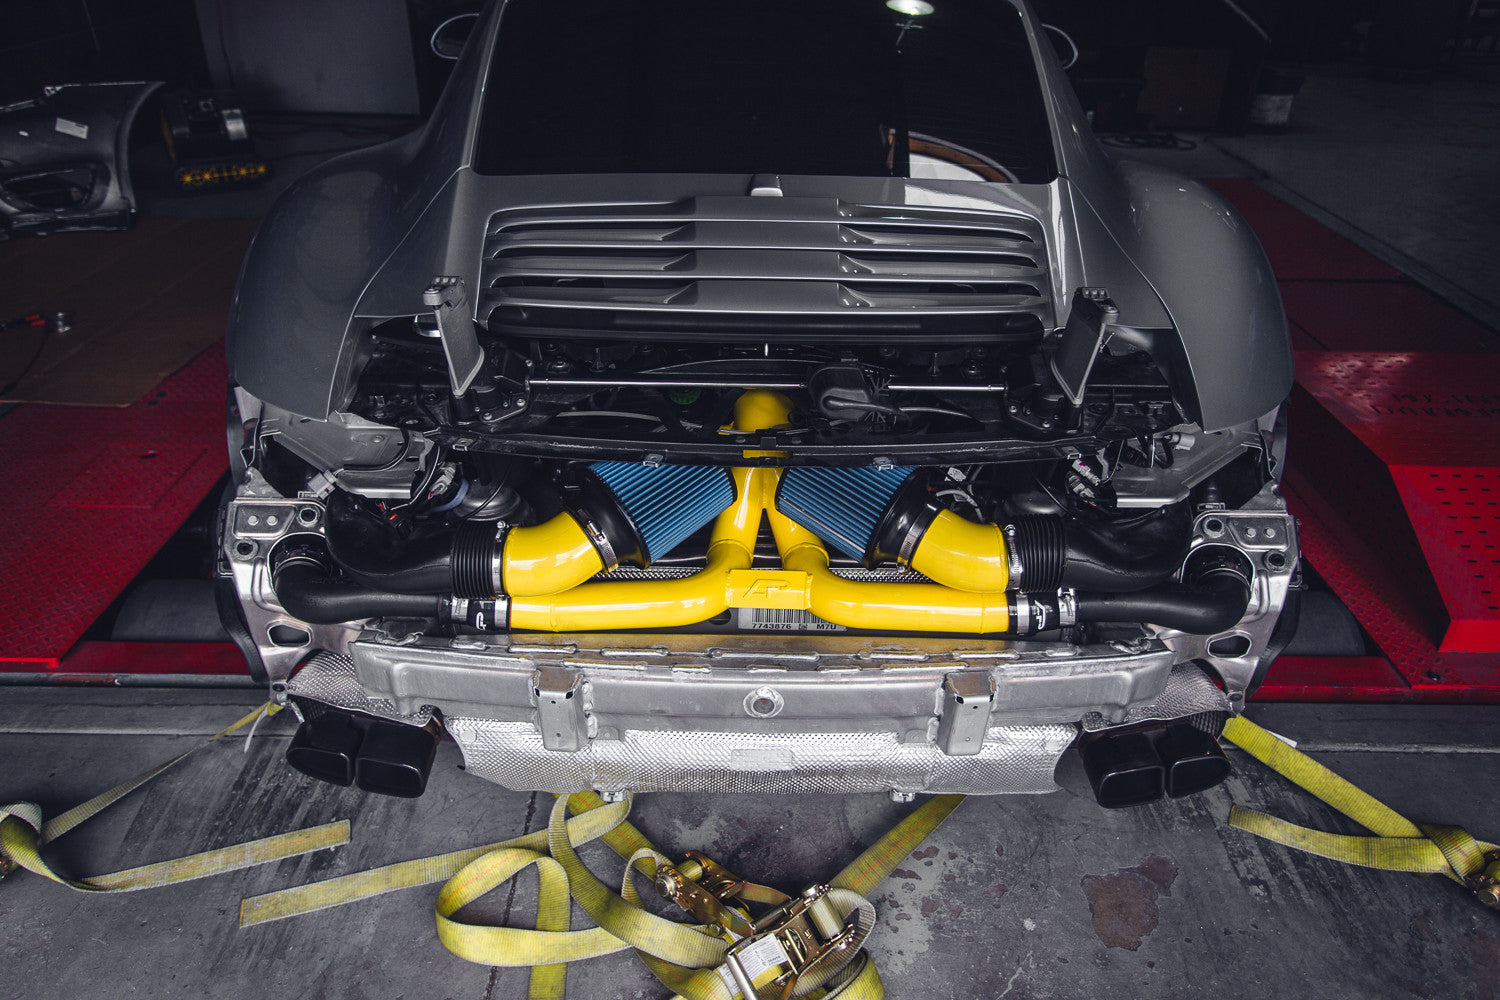 Agency power high flow y pipe 991 turbo